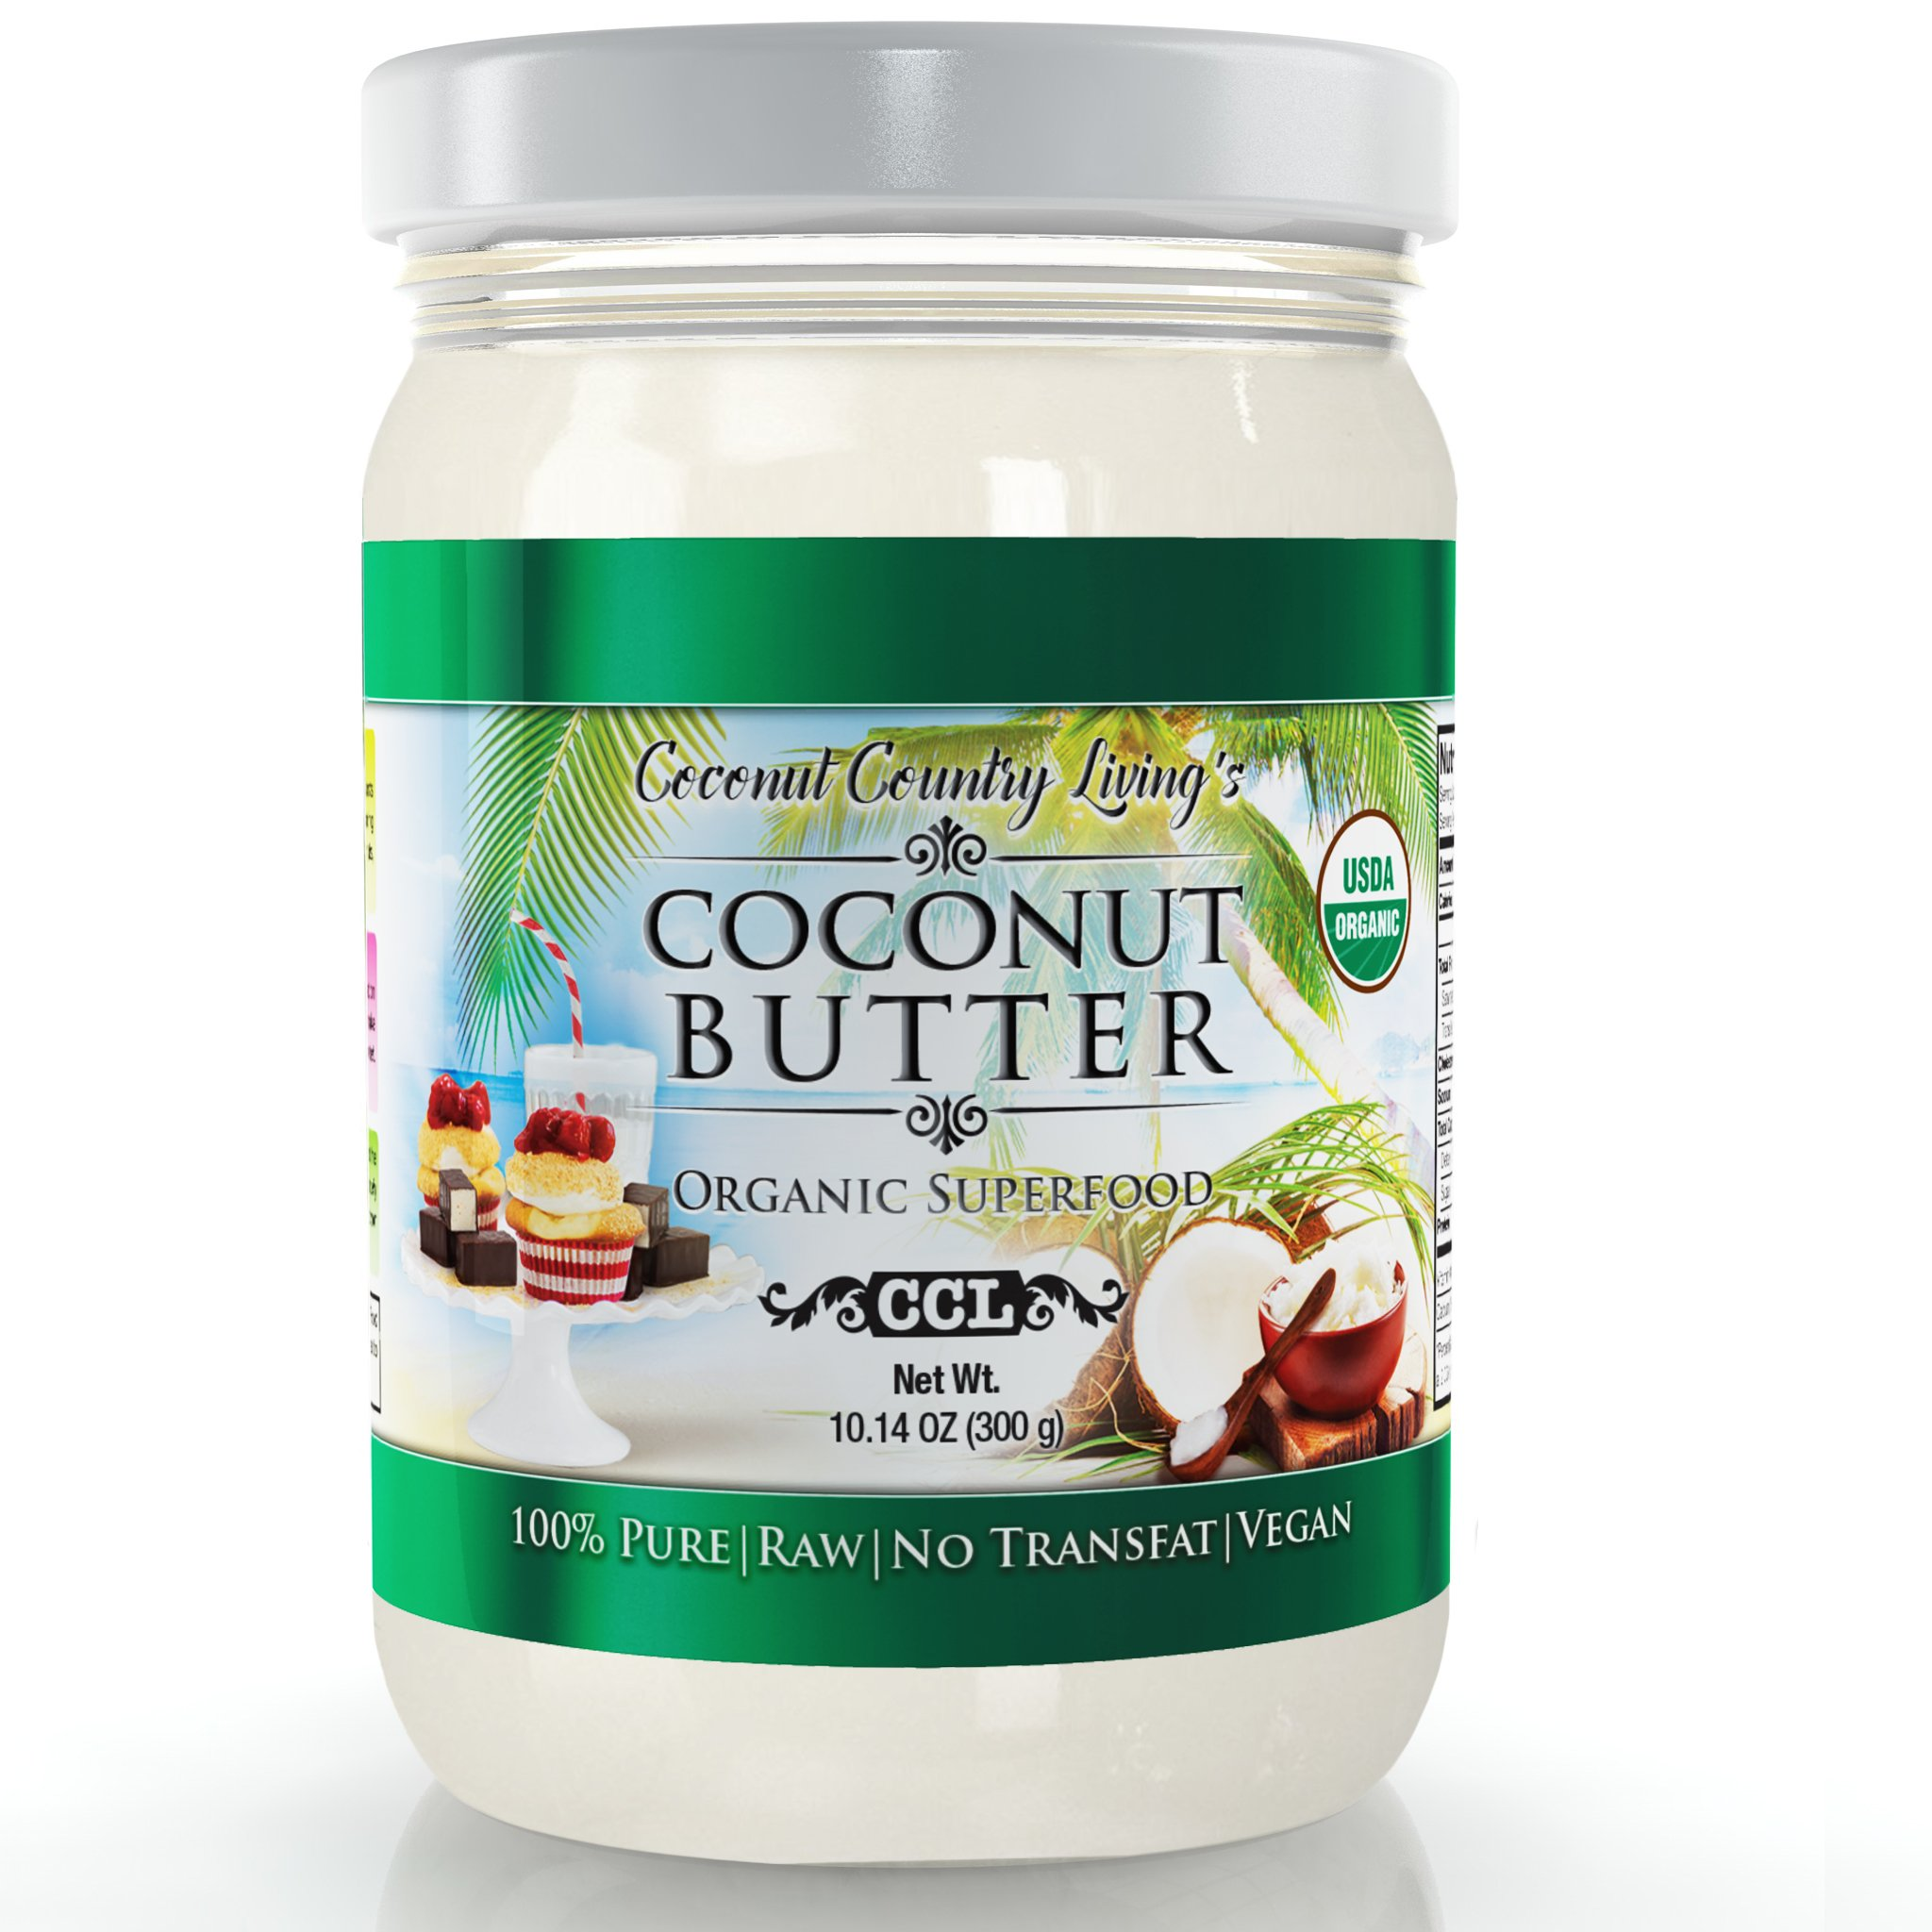 Coconut Butter Organic 10 oz Raw Stone Ground Pureed For Keto Paleo Friendly Treats by Coconut Country Living